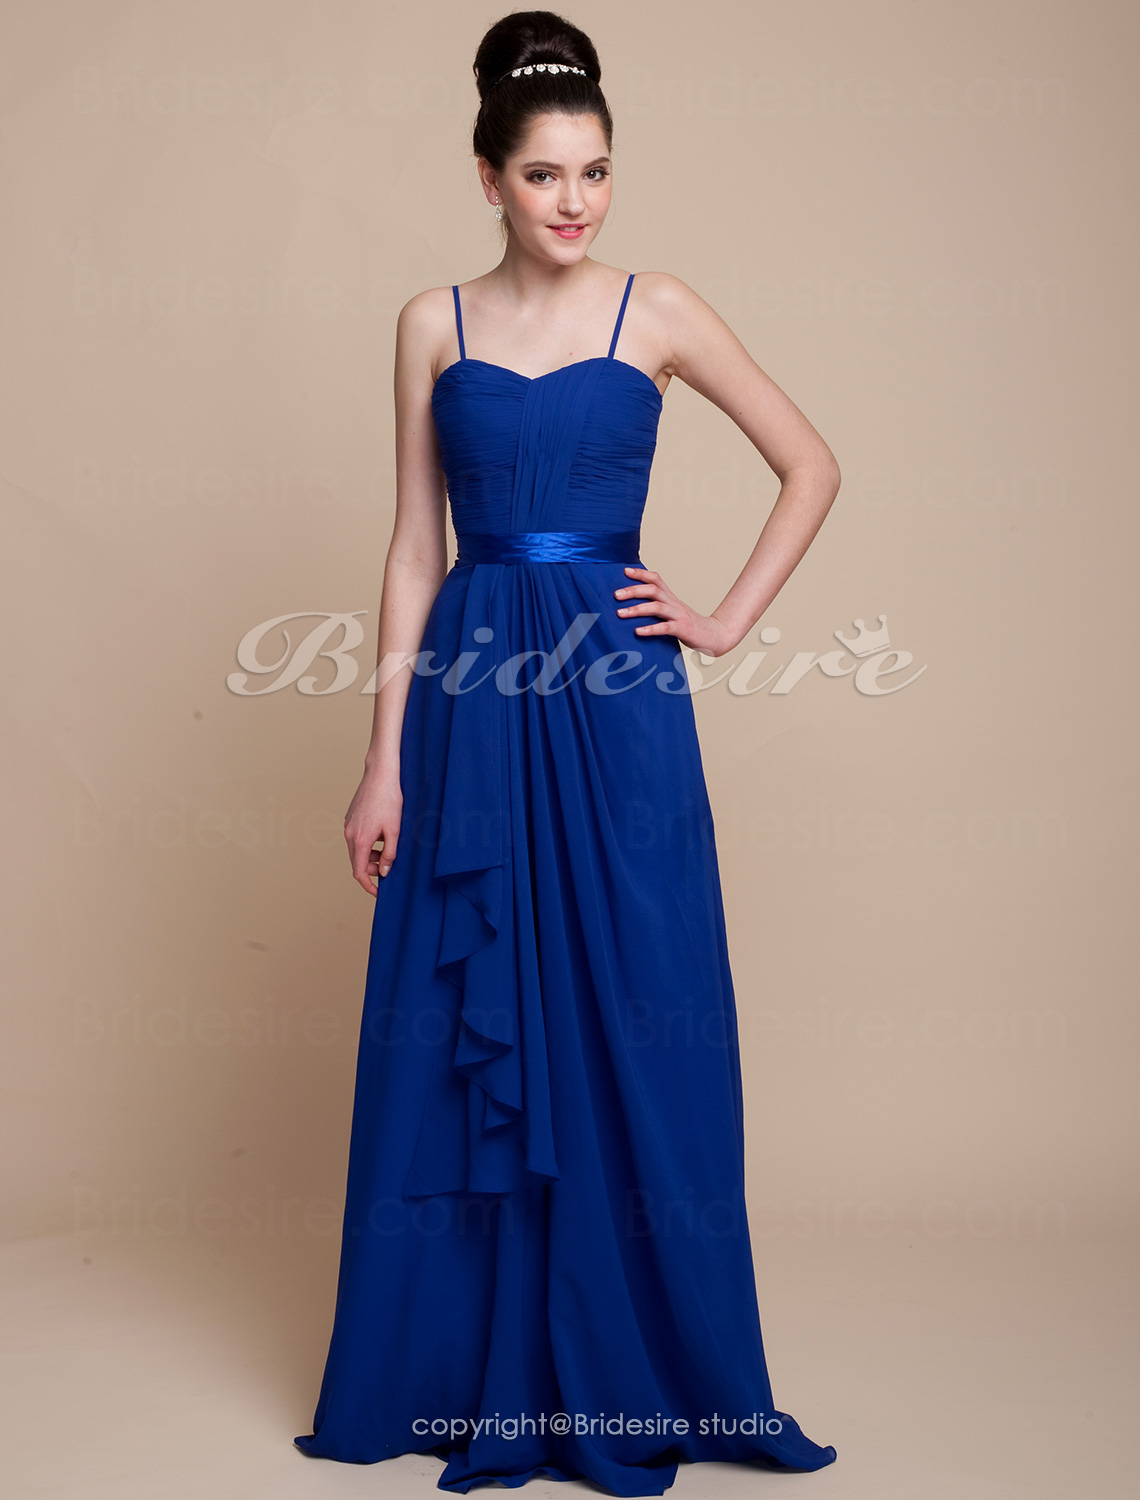 Sheath/Column Chiffon And Satin Sweetheart Floor-length Bridesmaid Dress With Cascading Ruffles